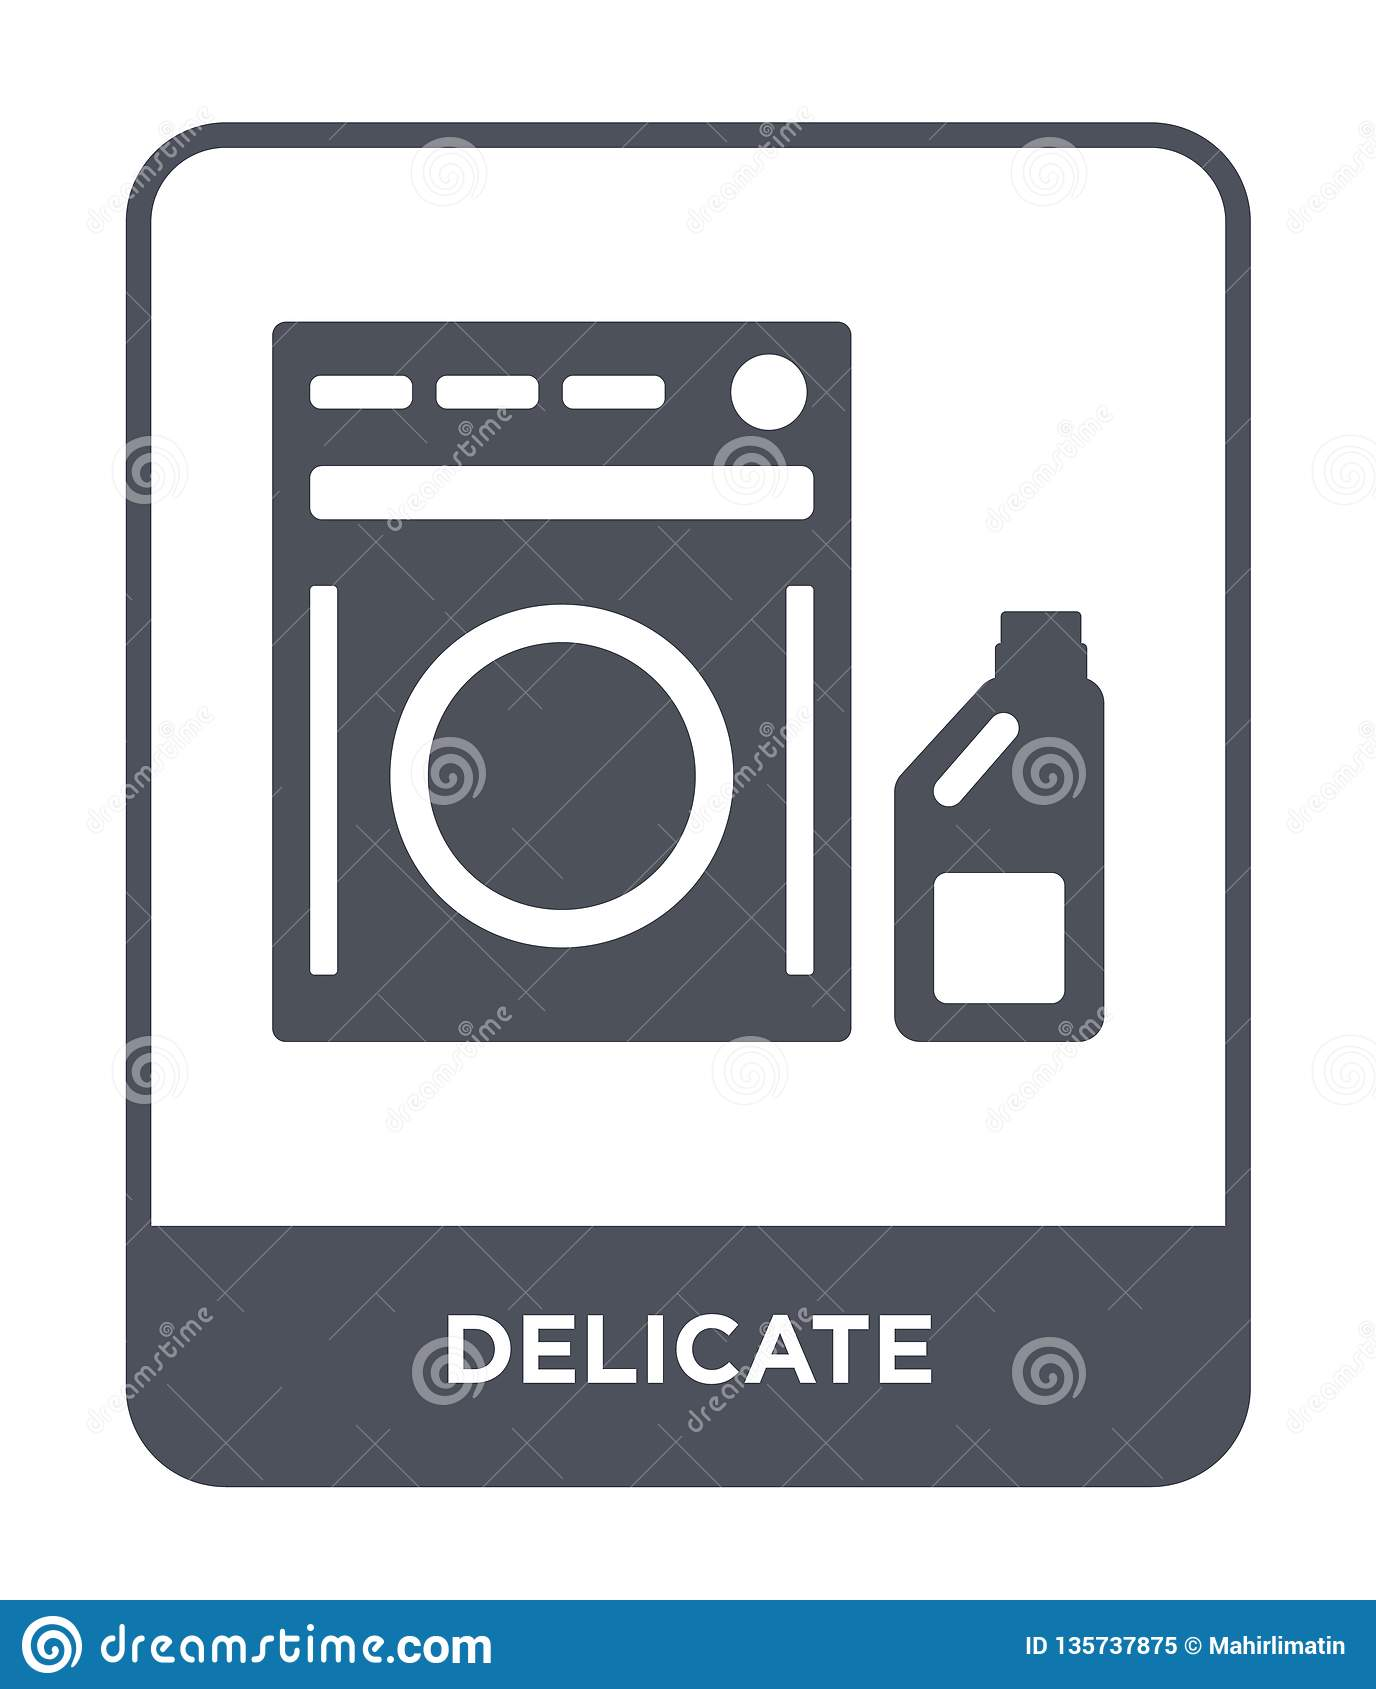 delicate icon in trendy design style. delicate icon isolated on white background. delicate vector icon simple and modern flat